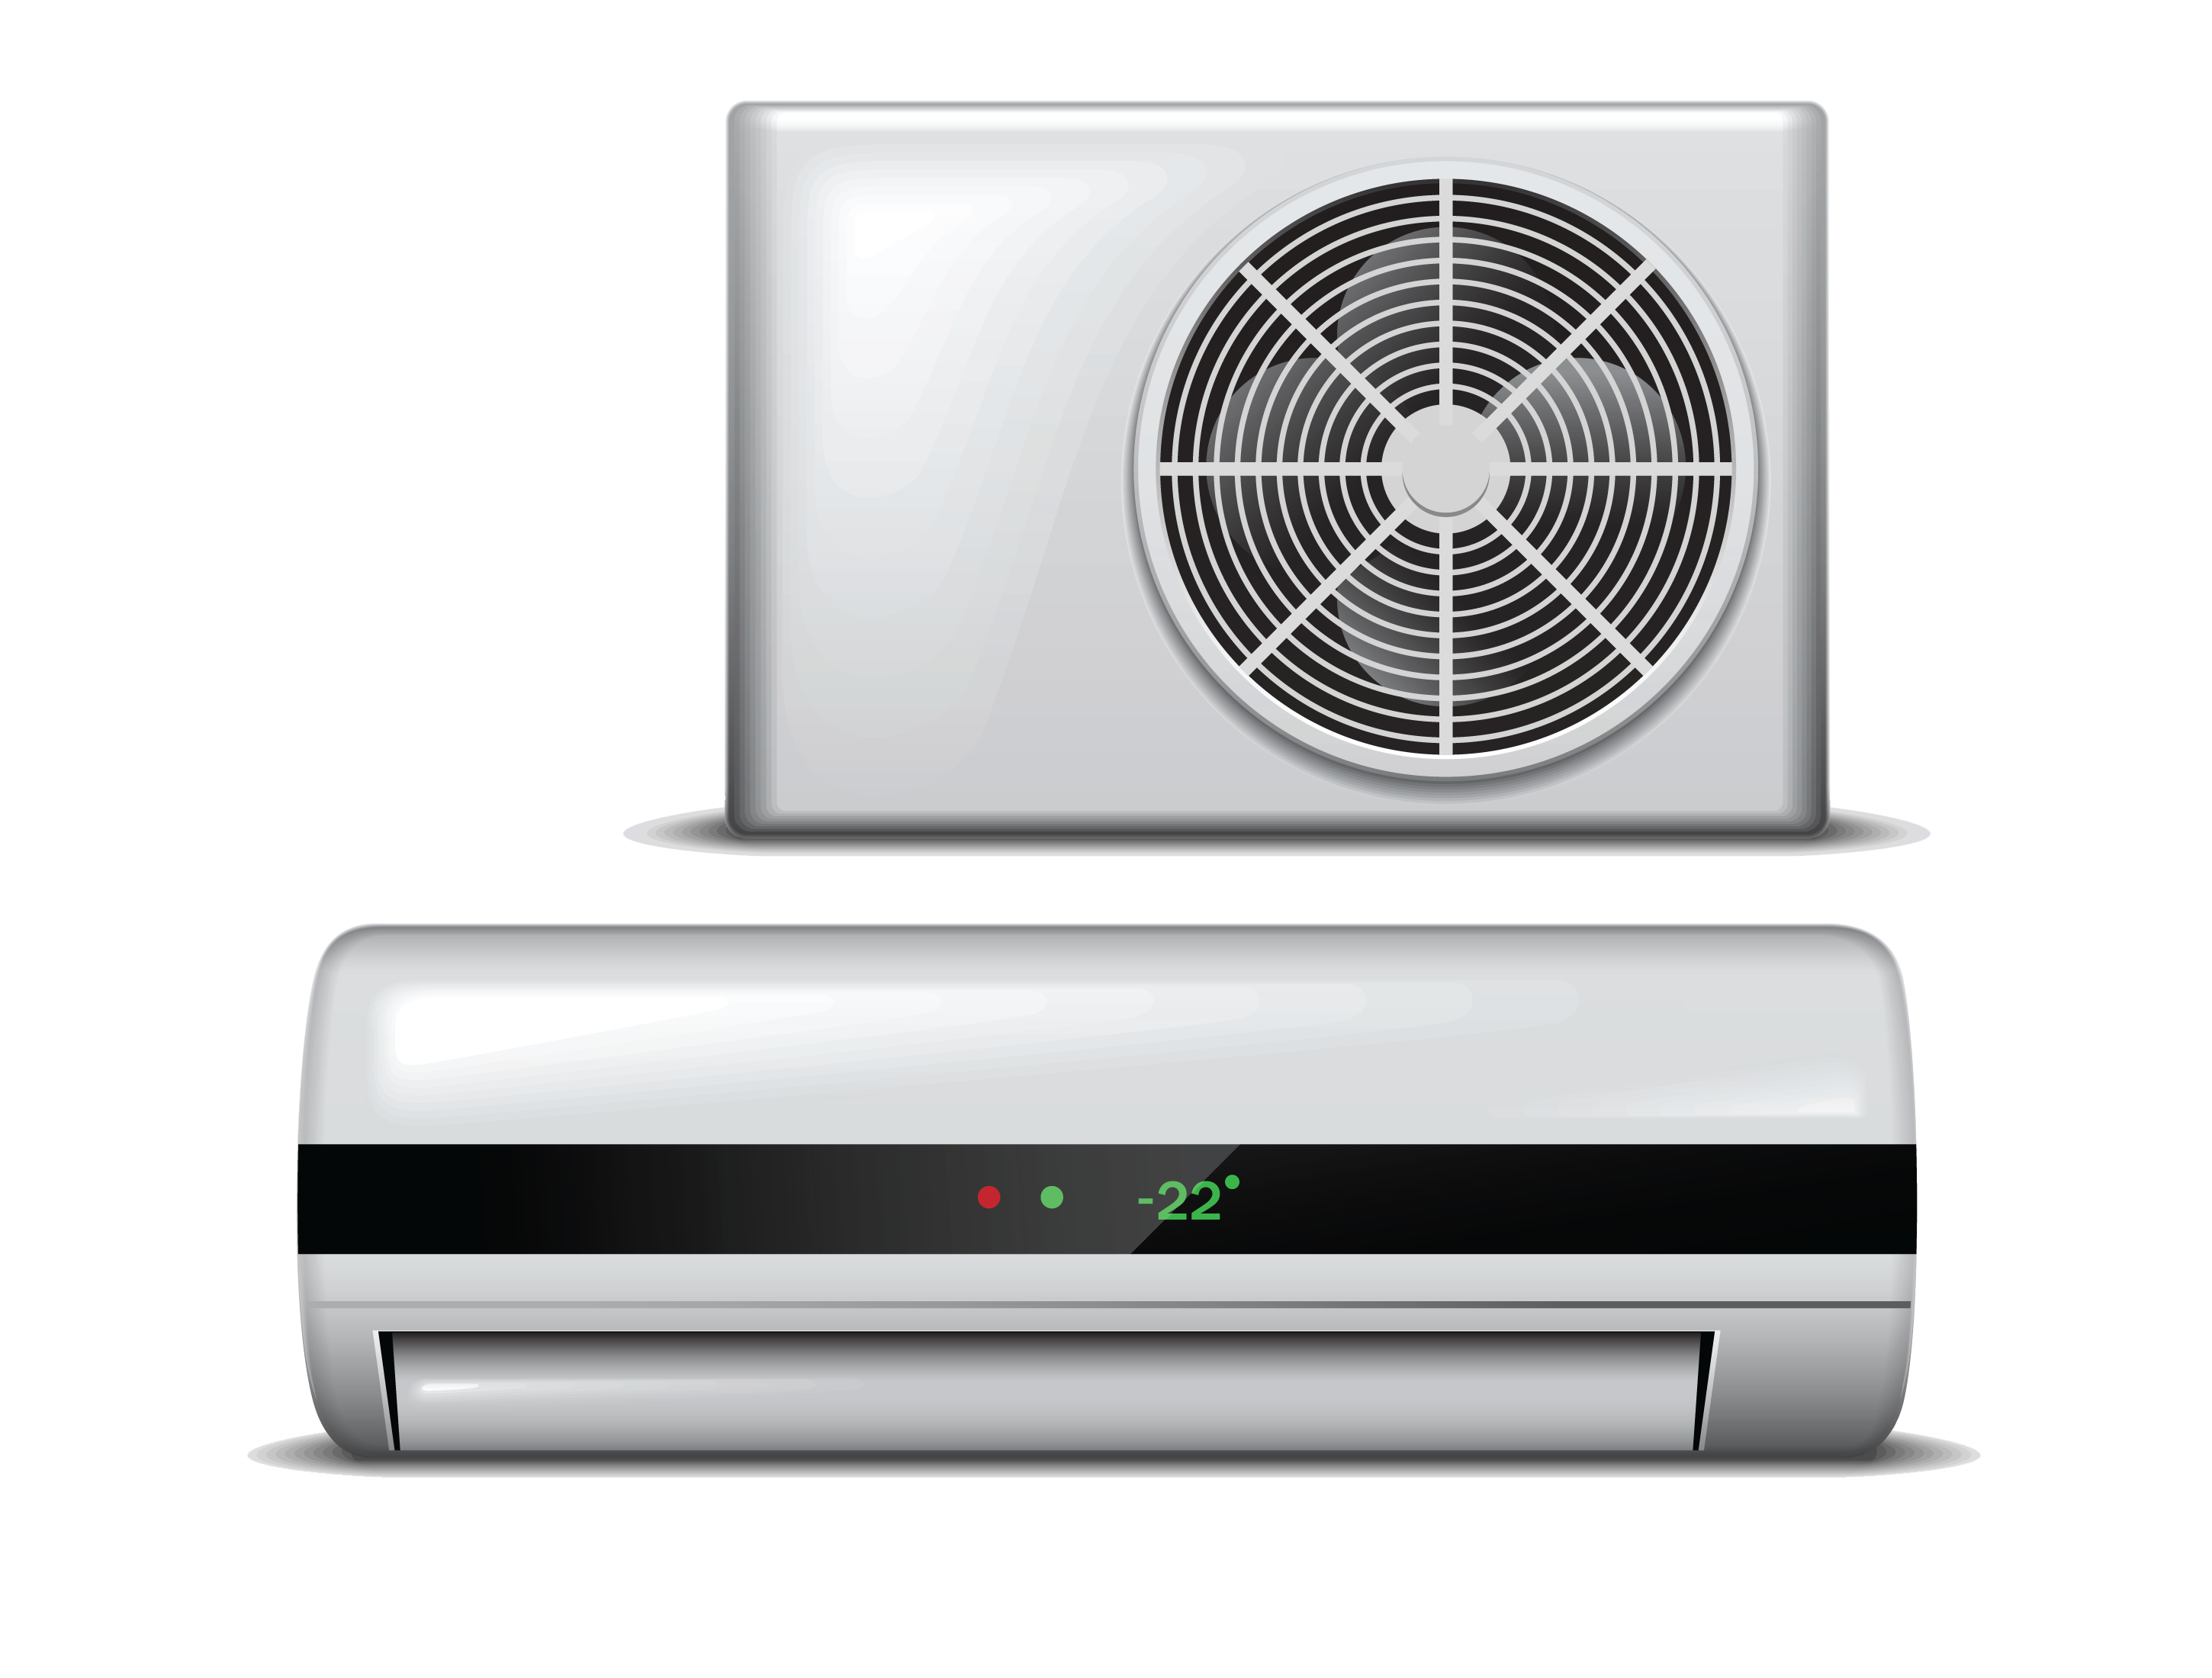 All Air Conditioner Price in Nepal